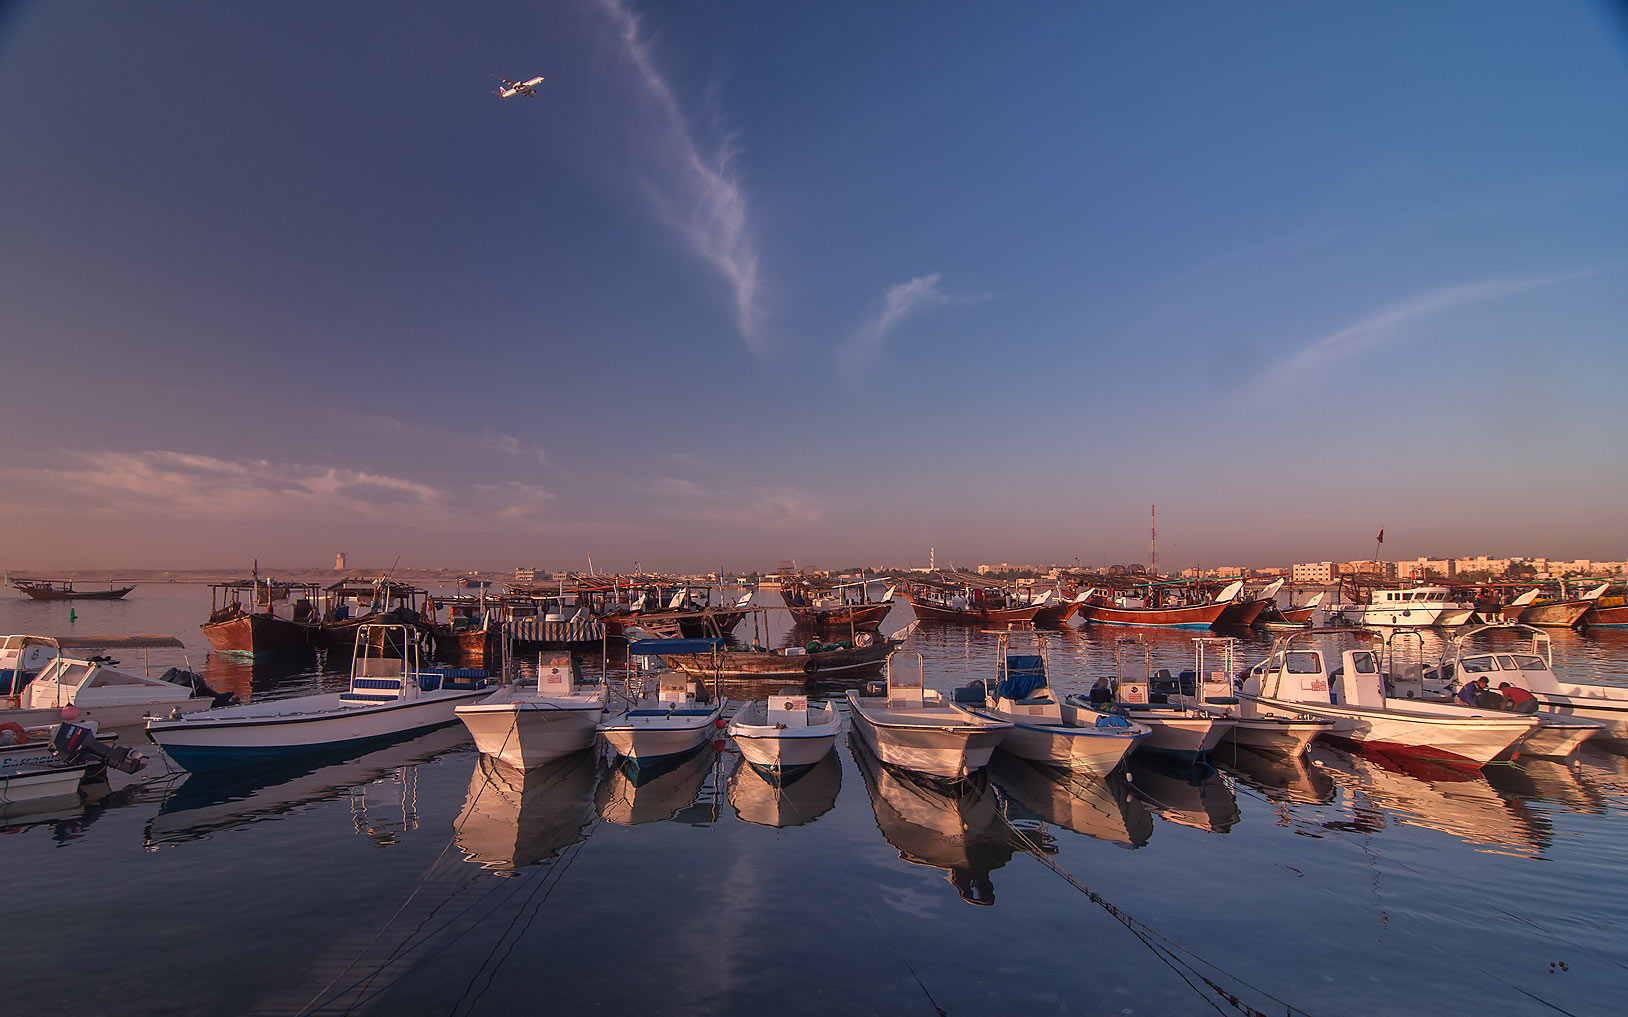 Rows of fishing boats in harbor in Al Wakra at sunrise, with airplane in background. Qatar